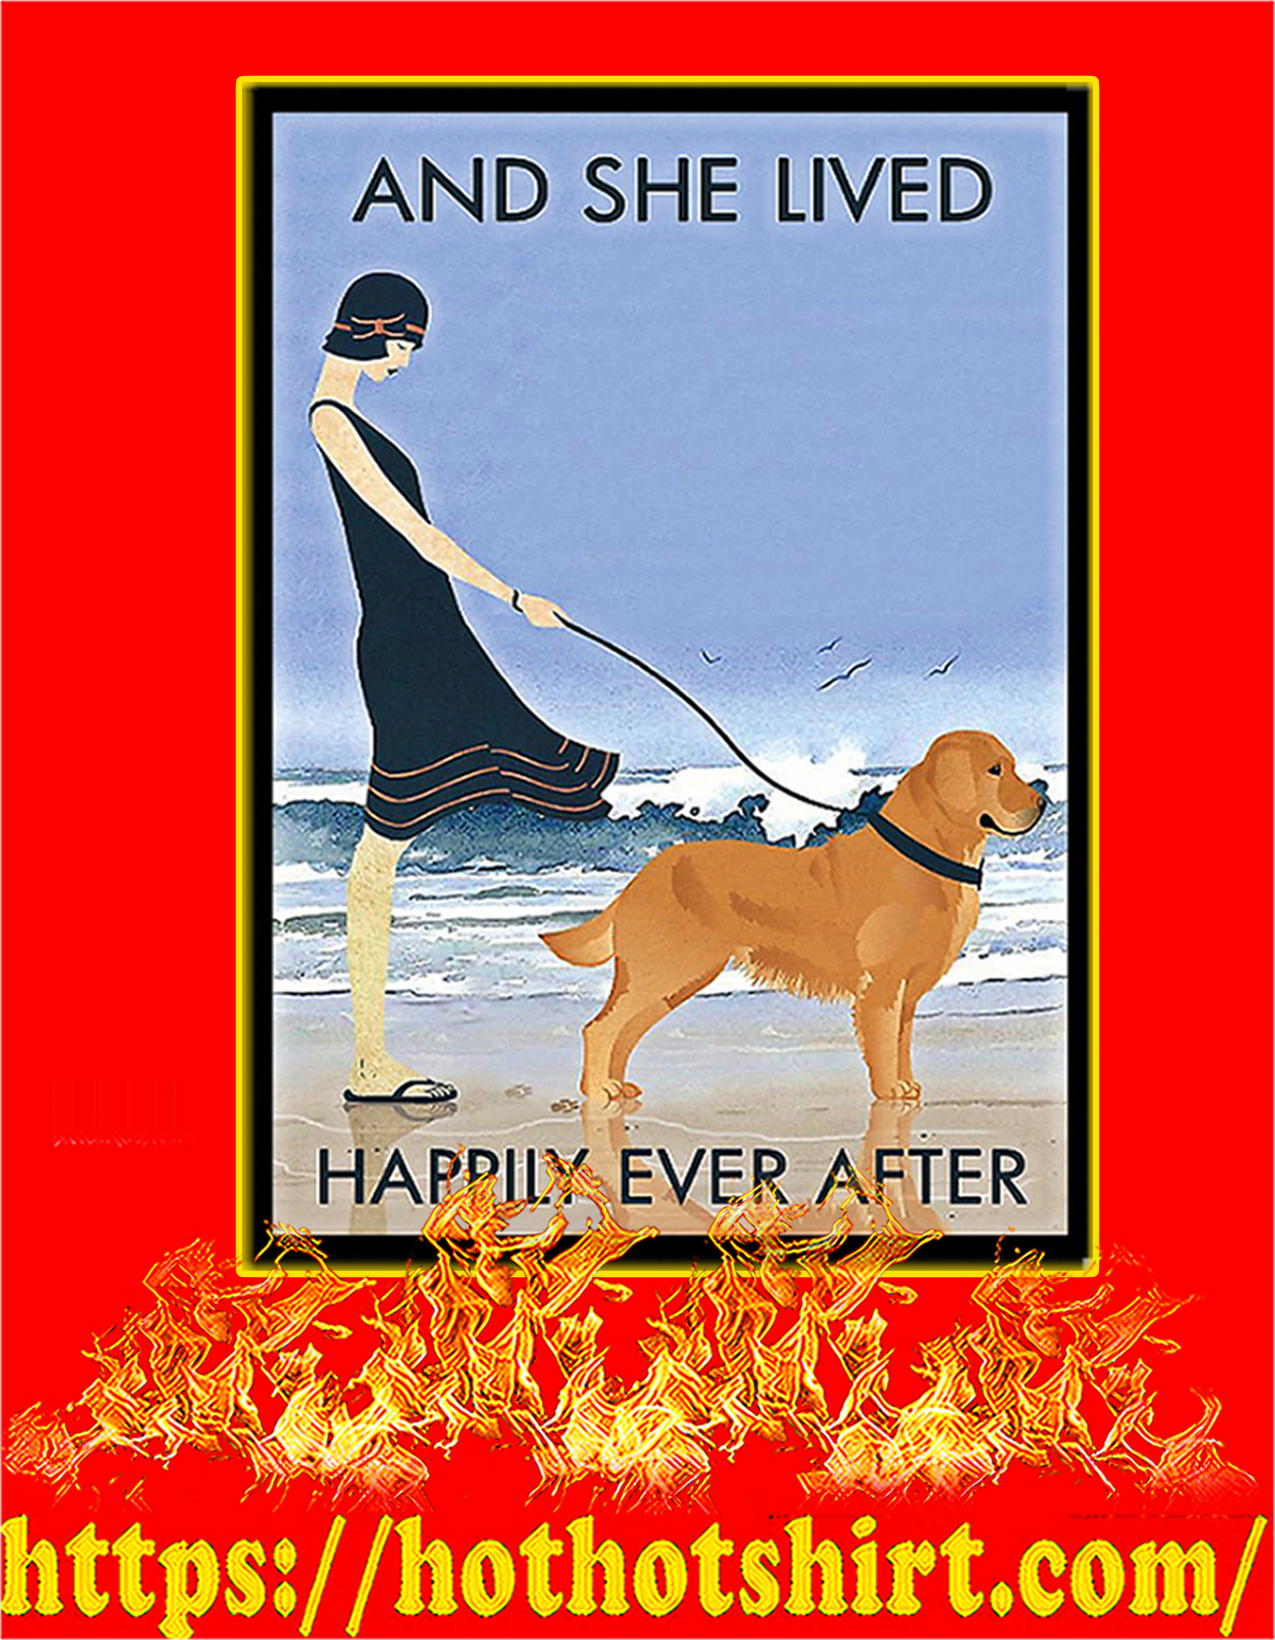 Golden Retriever And she lived happily ever after poster - A2